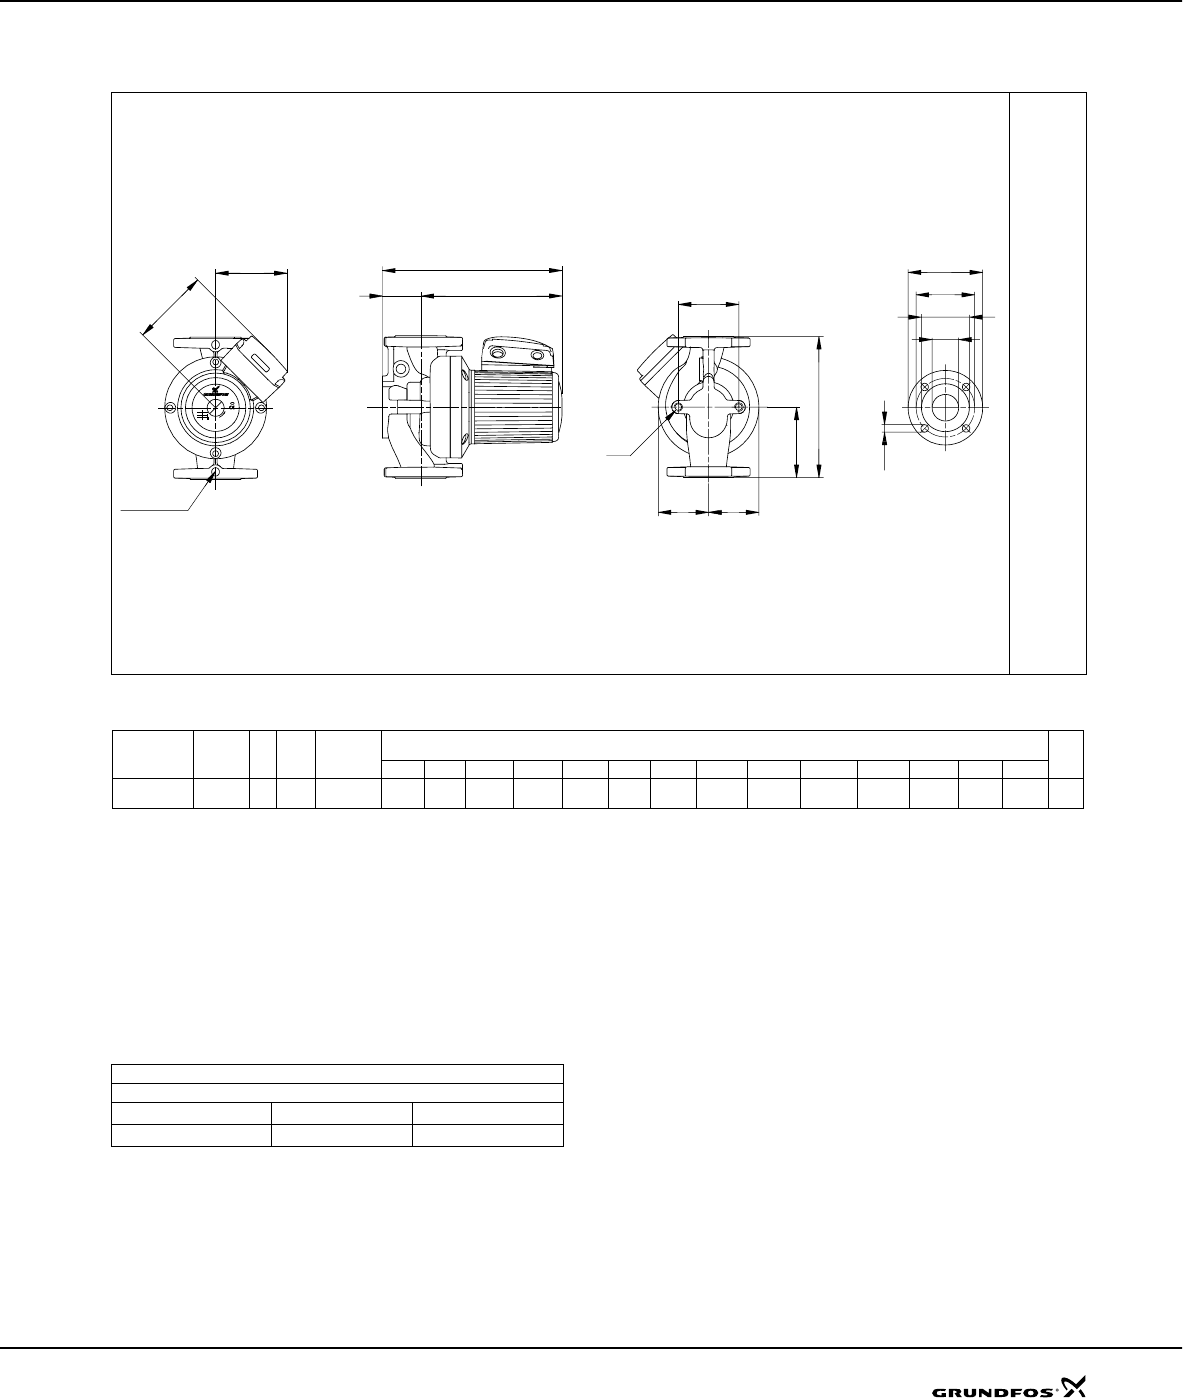 17570 2 Grundfos 539605 Product Guide User Manual Taco 1632 Wiring Diagram 41